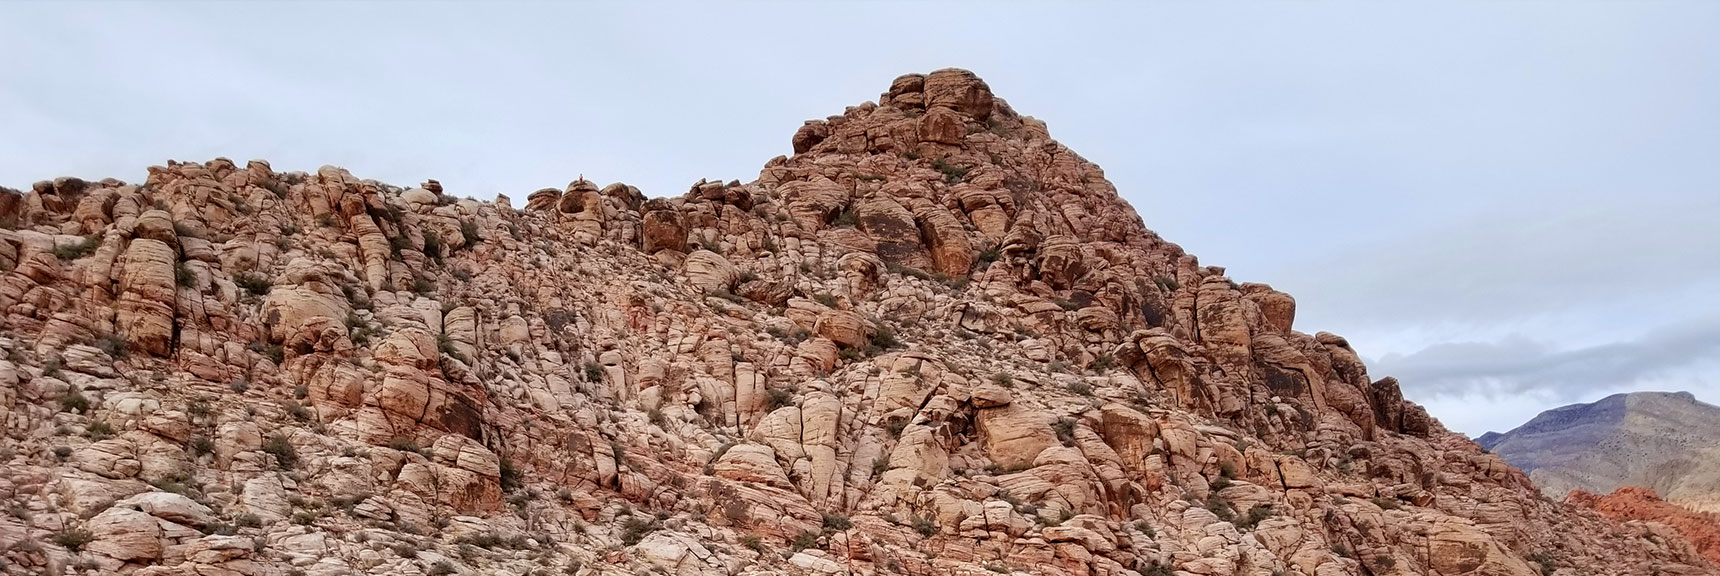 Looking at the Calico Hills in Calico Basin Northwest of Las Vegas Nevada